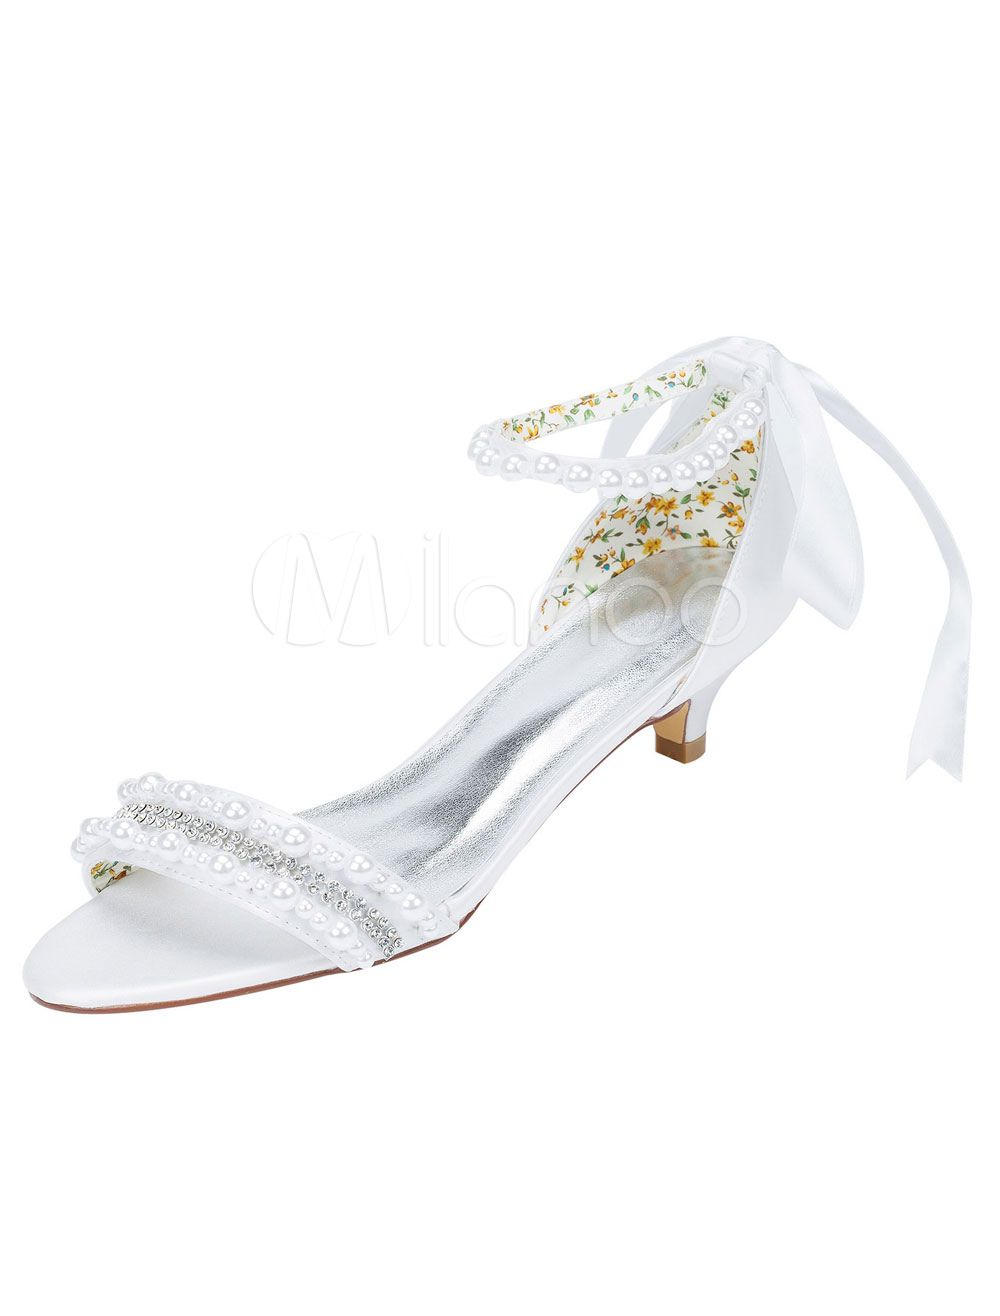 White Wedding Shoes Kitten Heel Sandals Pearl Rhinestone Ankle Strap Bridal Shoes With Ribbon Bow Kitten Heel Wedding Shoes Bridal Shoes White Wedding Shoes